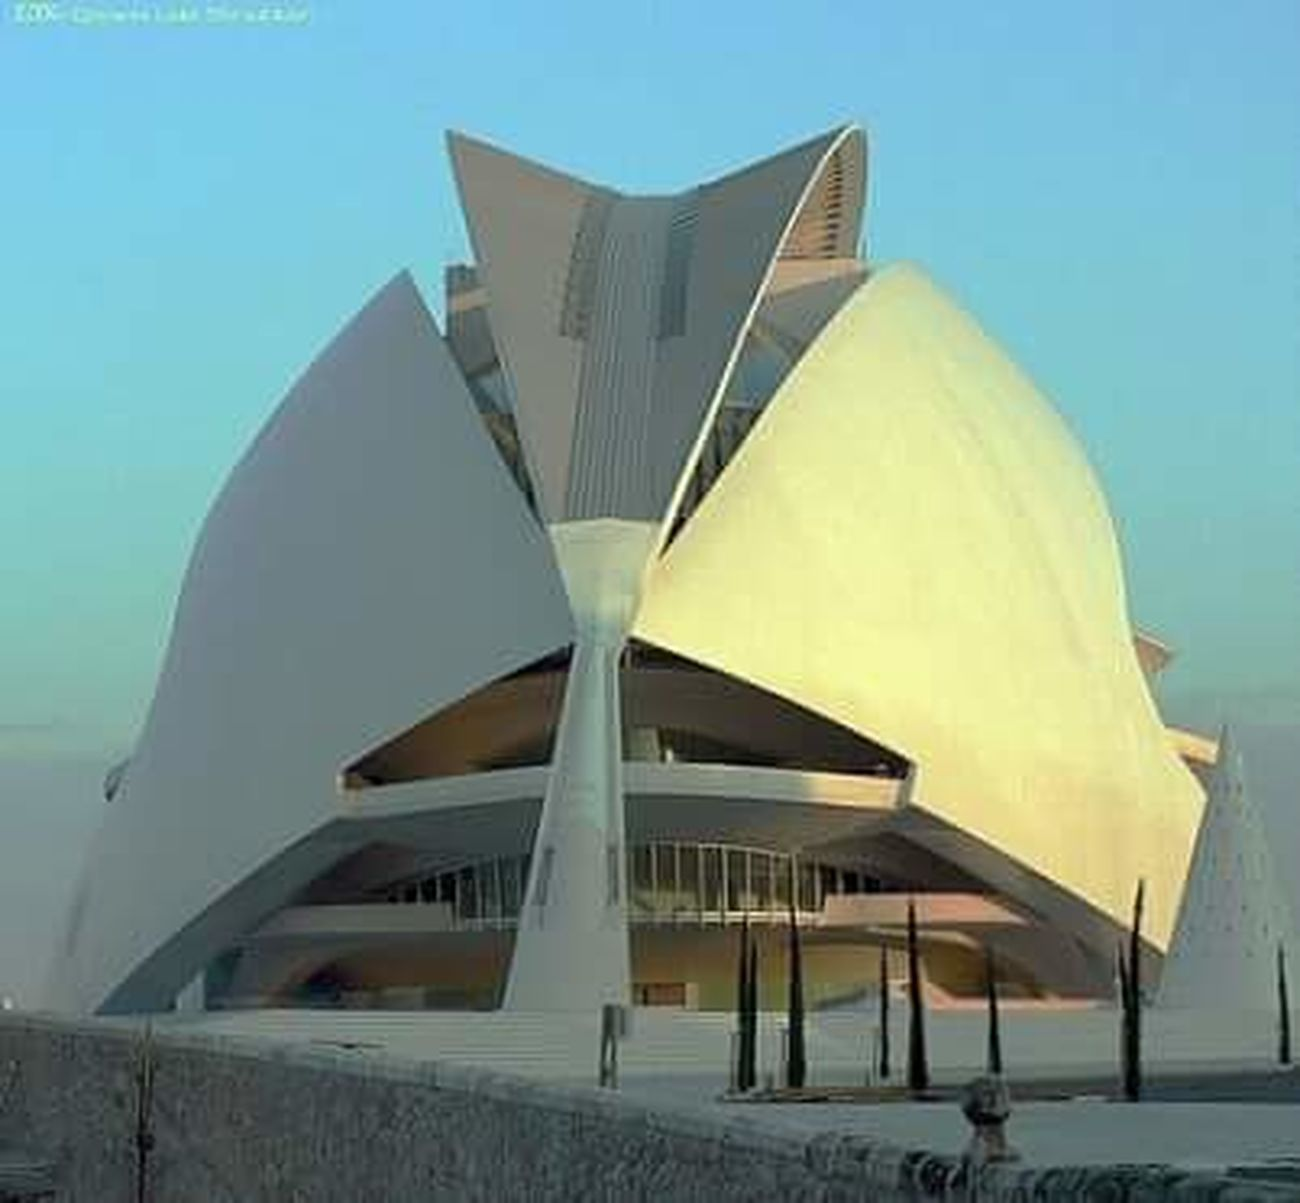 Travel Destinations Travel Architecture No People Building Exterior City Modern Sky Concert Hall  Outdoors Day València Valencia, Spain Tree Photography Fotografia Architecture Travel Vacations Bridge - Man Made Structure Colour Image Colour Photography Colours Of Life Scenics City